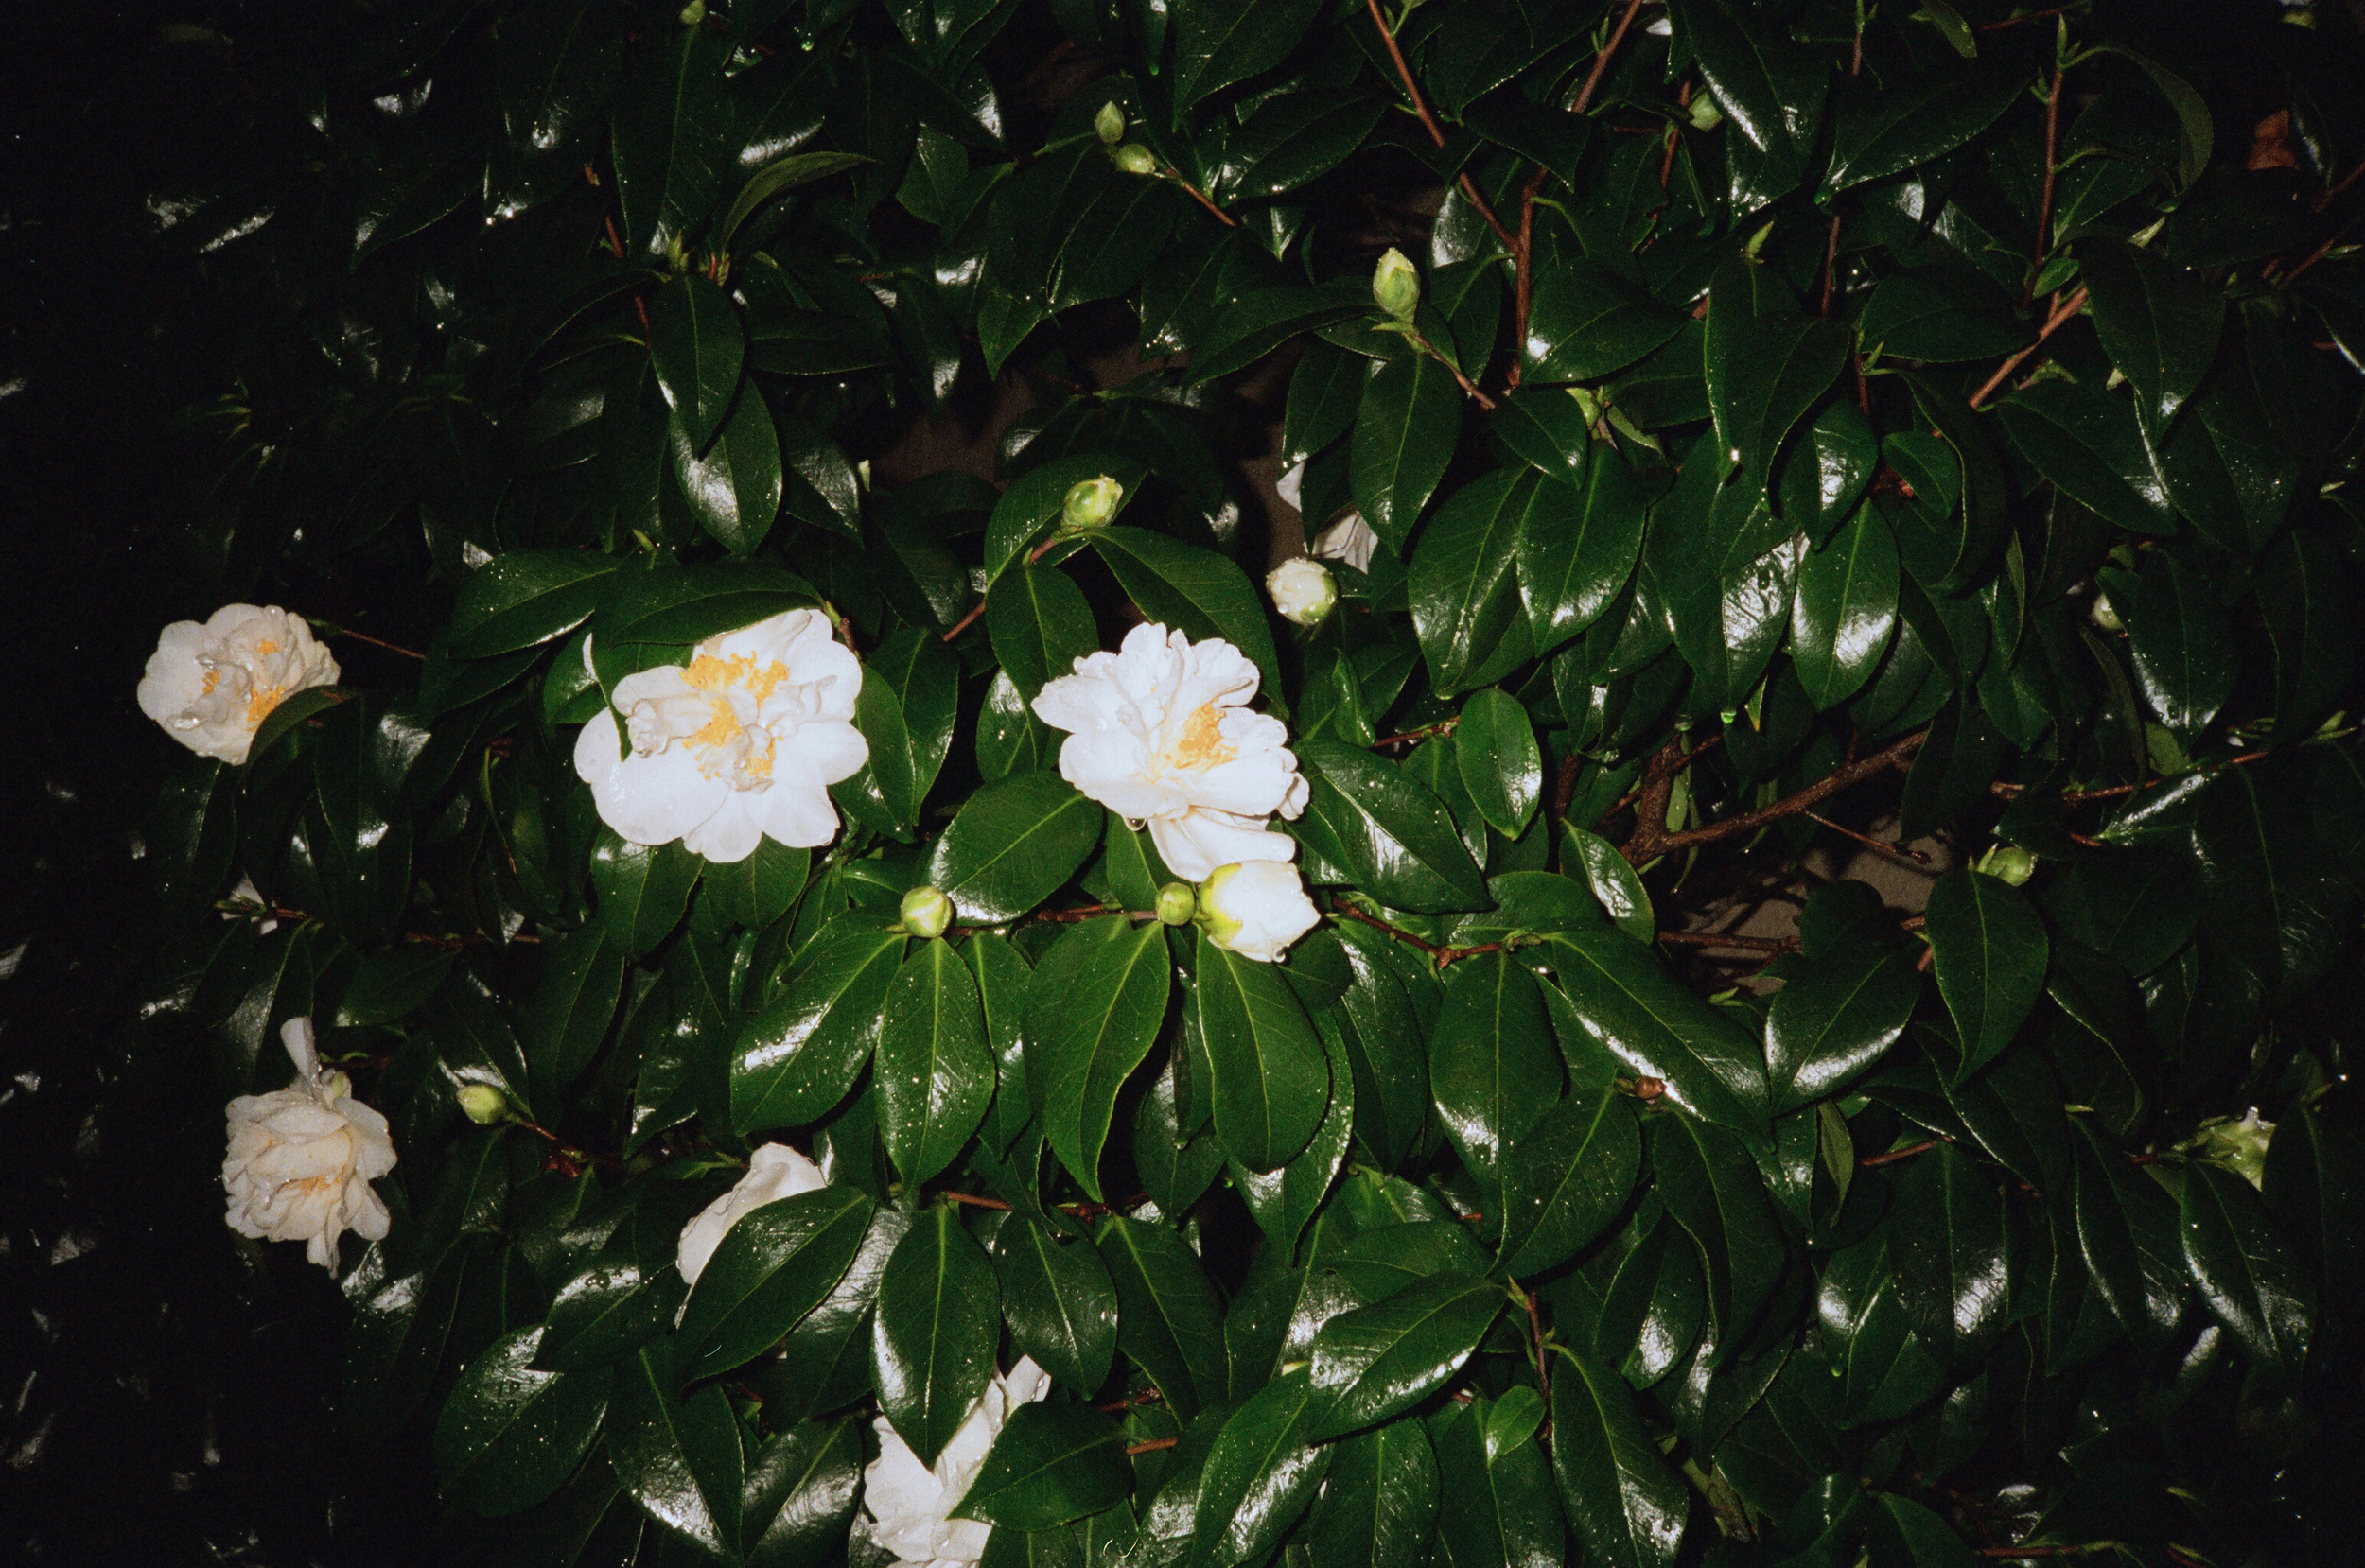 Rainy Flower At Midnight